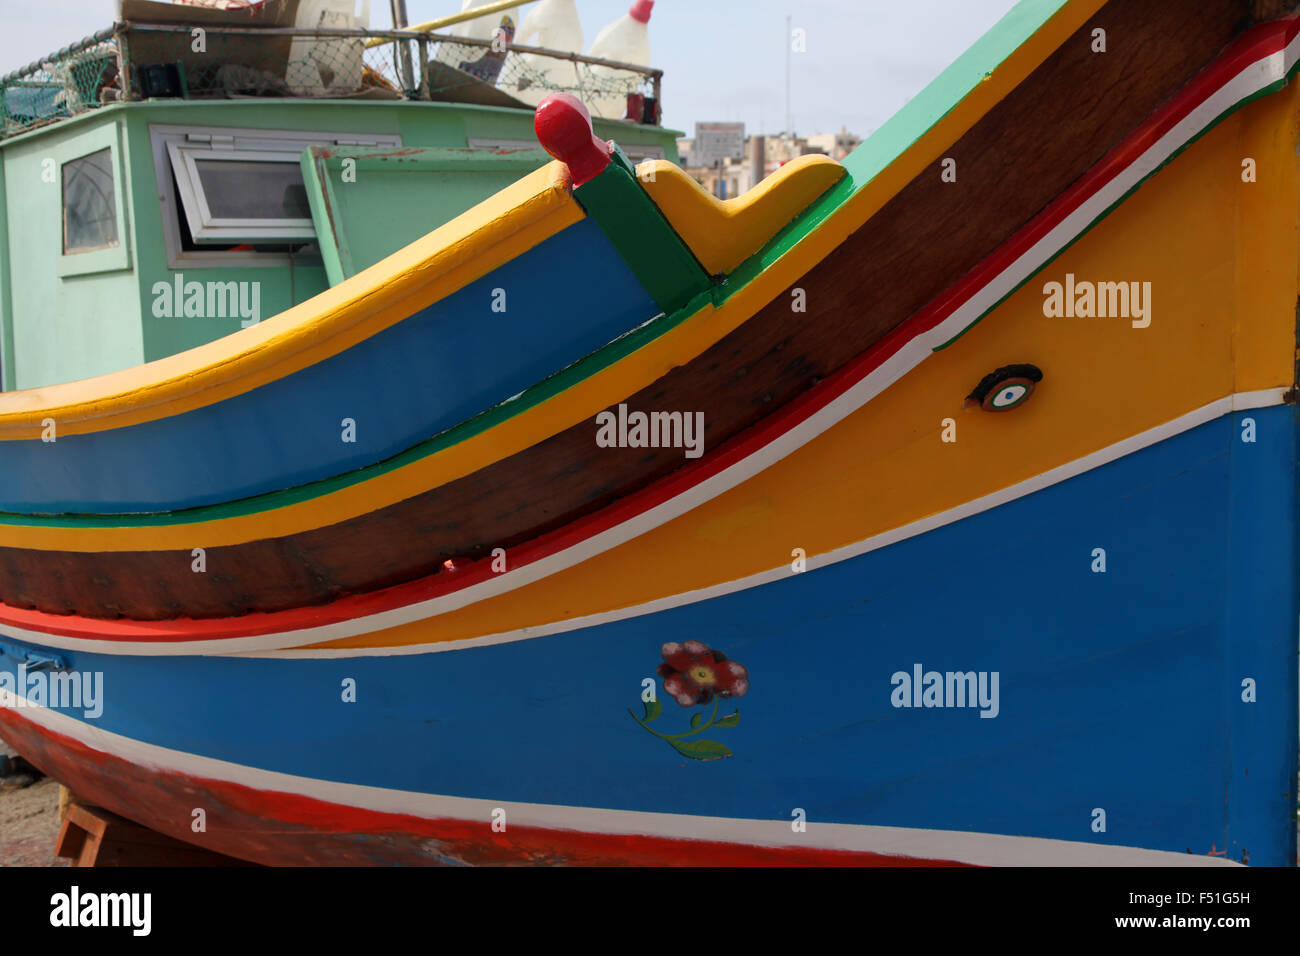 A traditional Maltese fishing boat, the Luzzu hauled up and being repainted on the harbour side - Stock Image